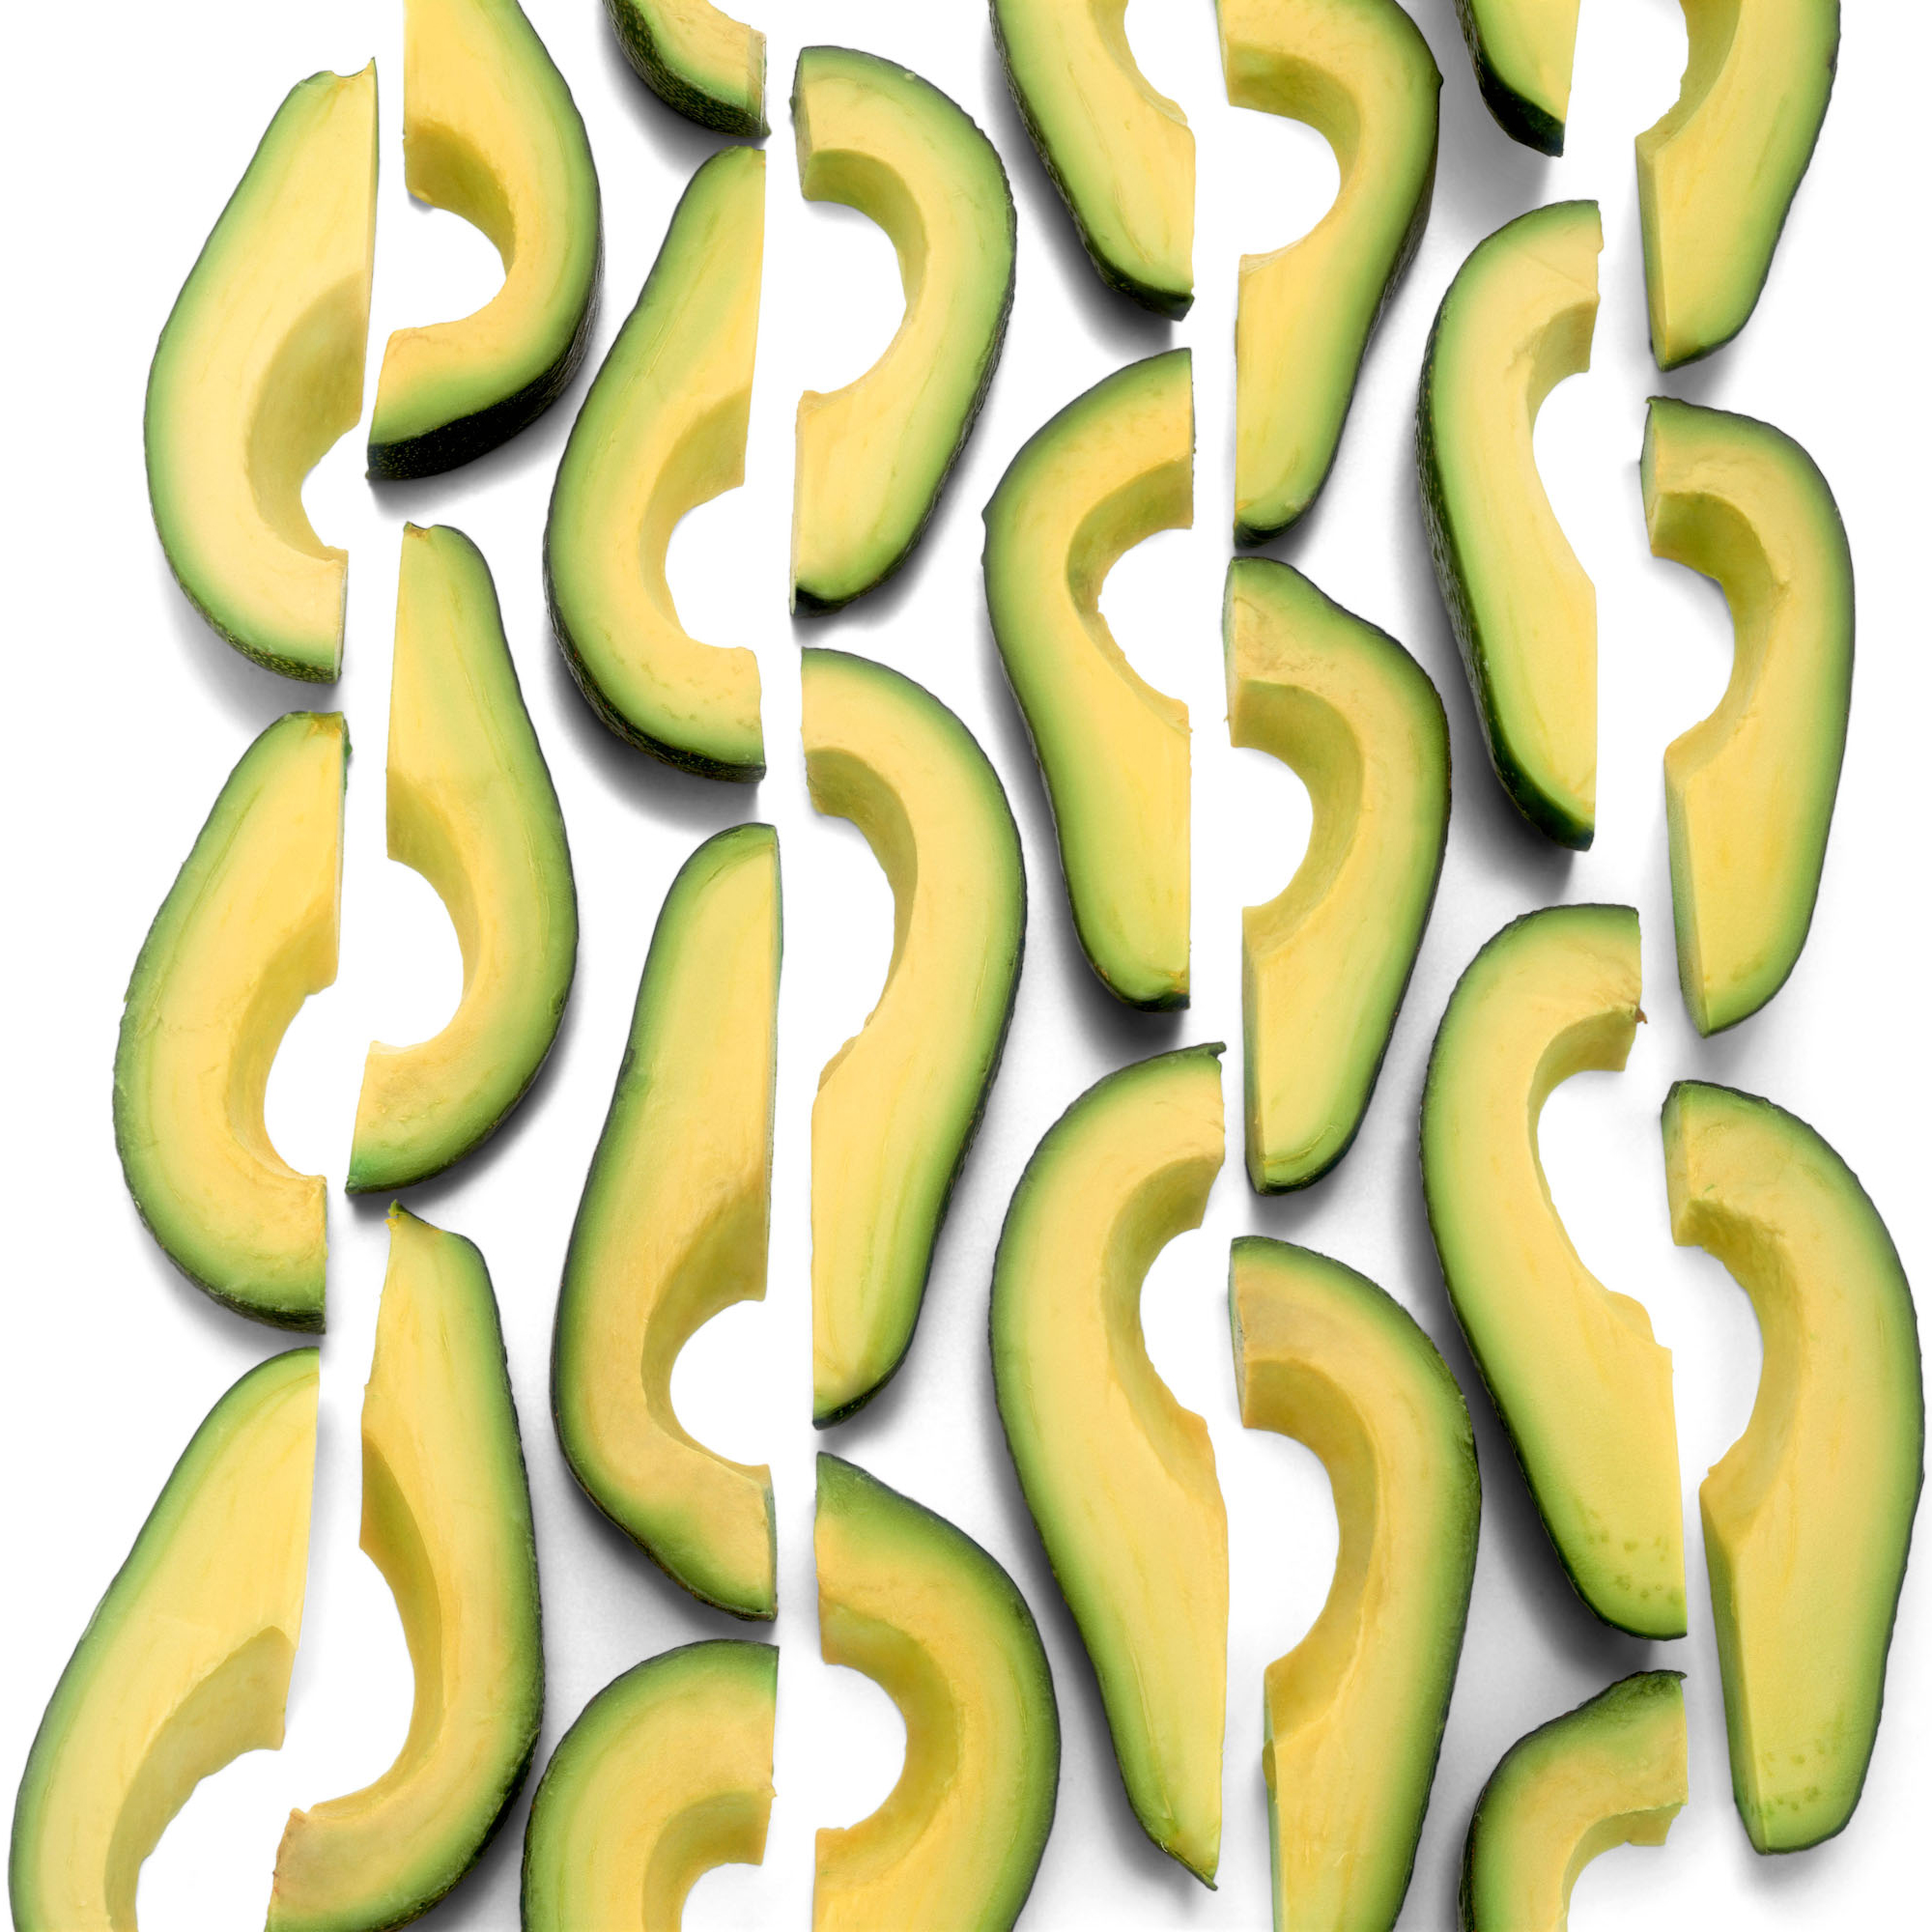 sliced avocados creating a pattern